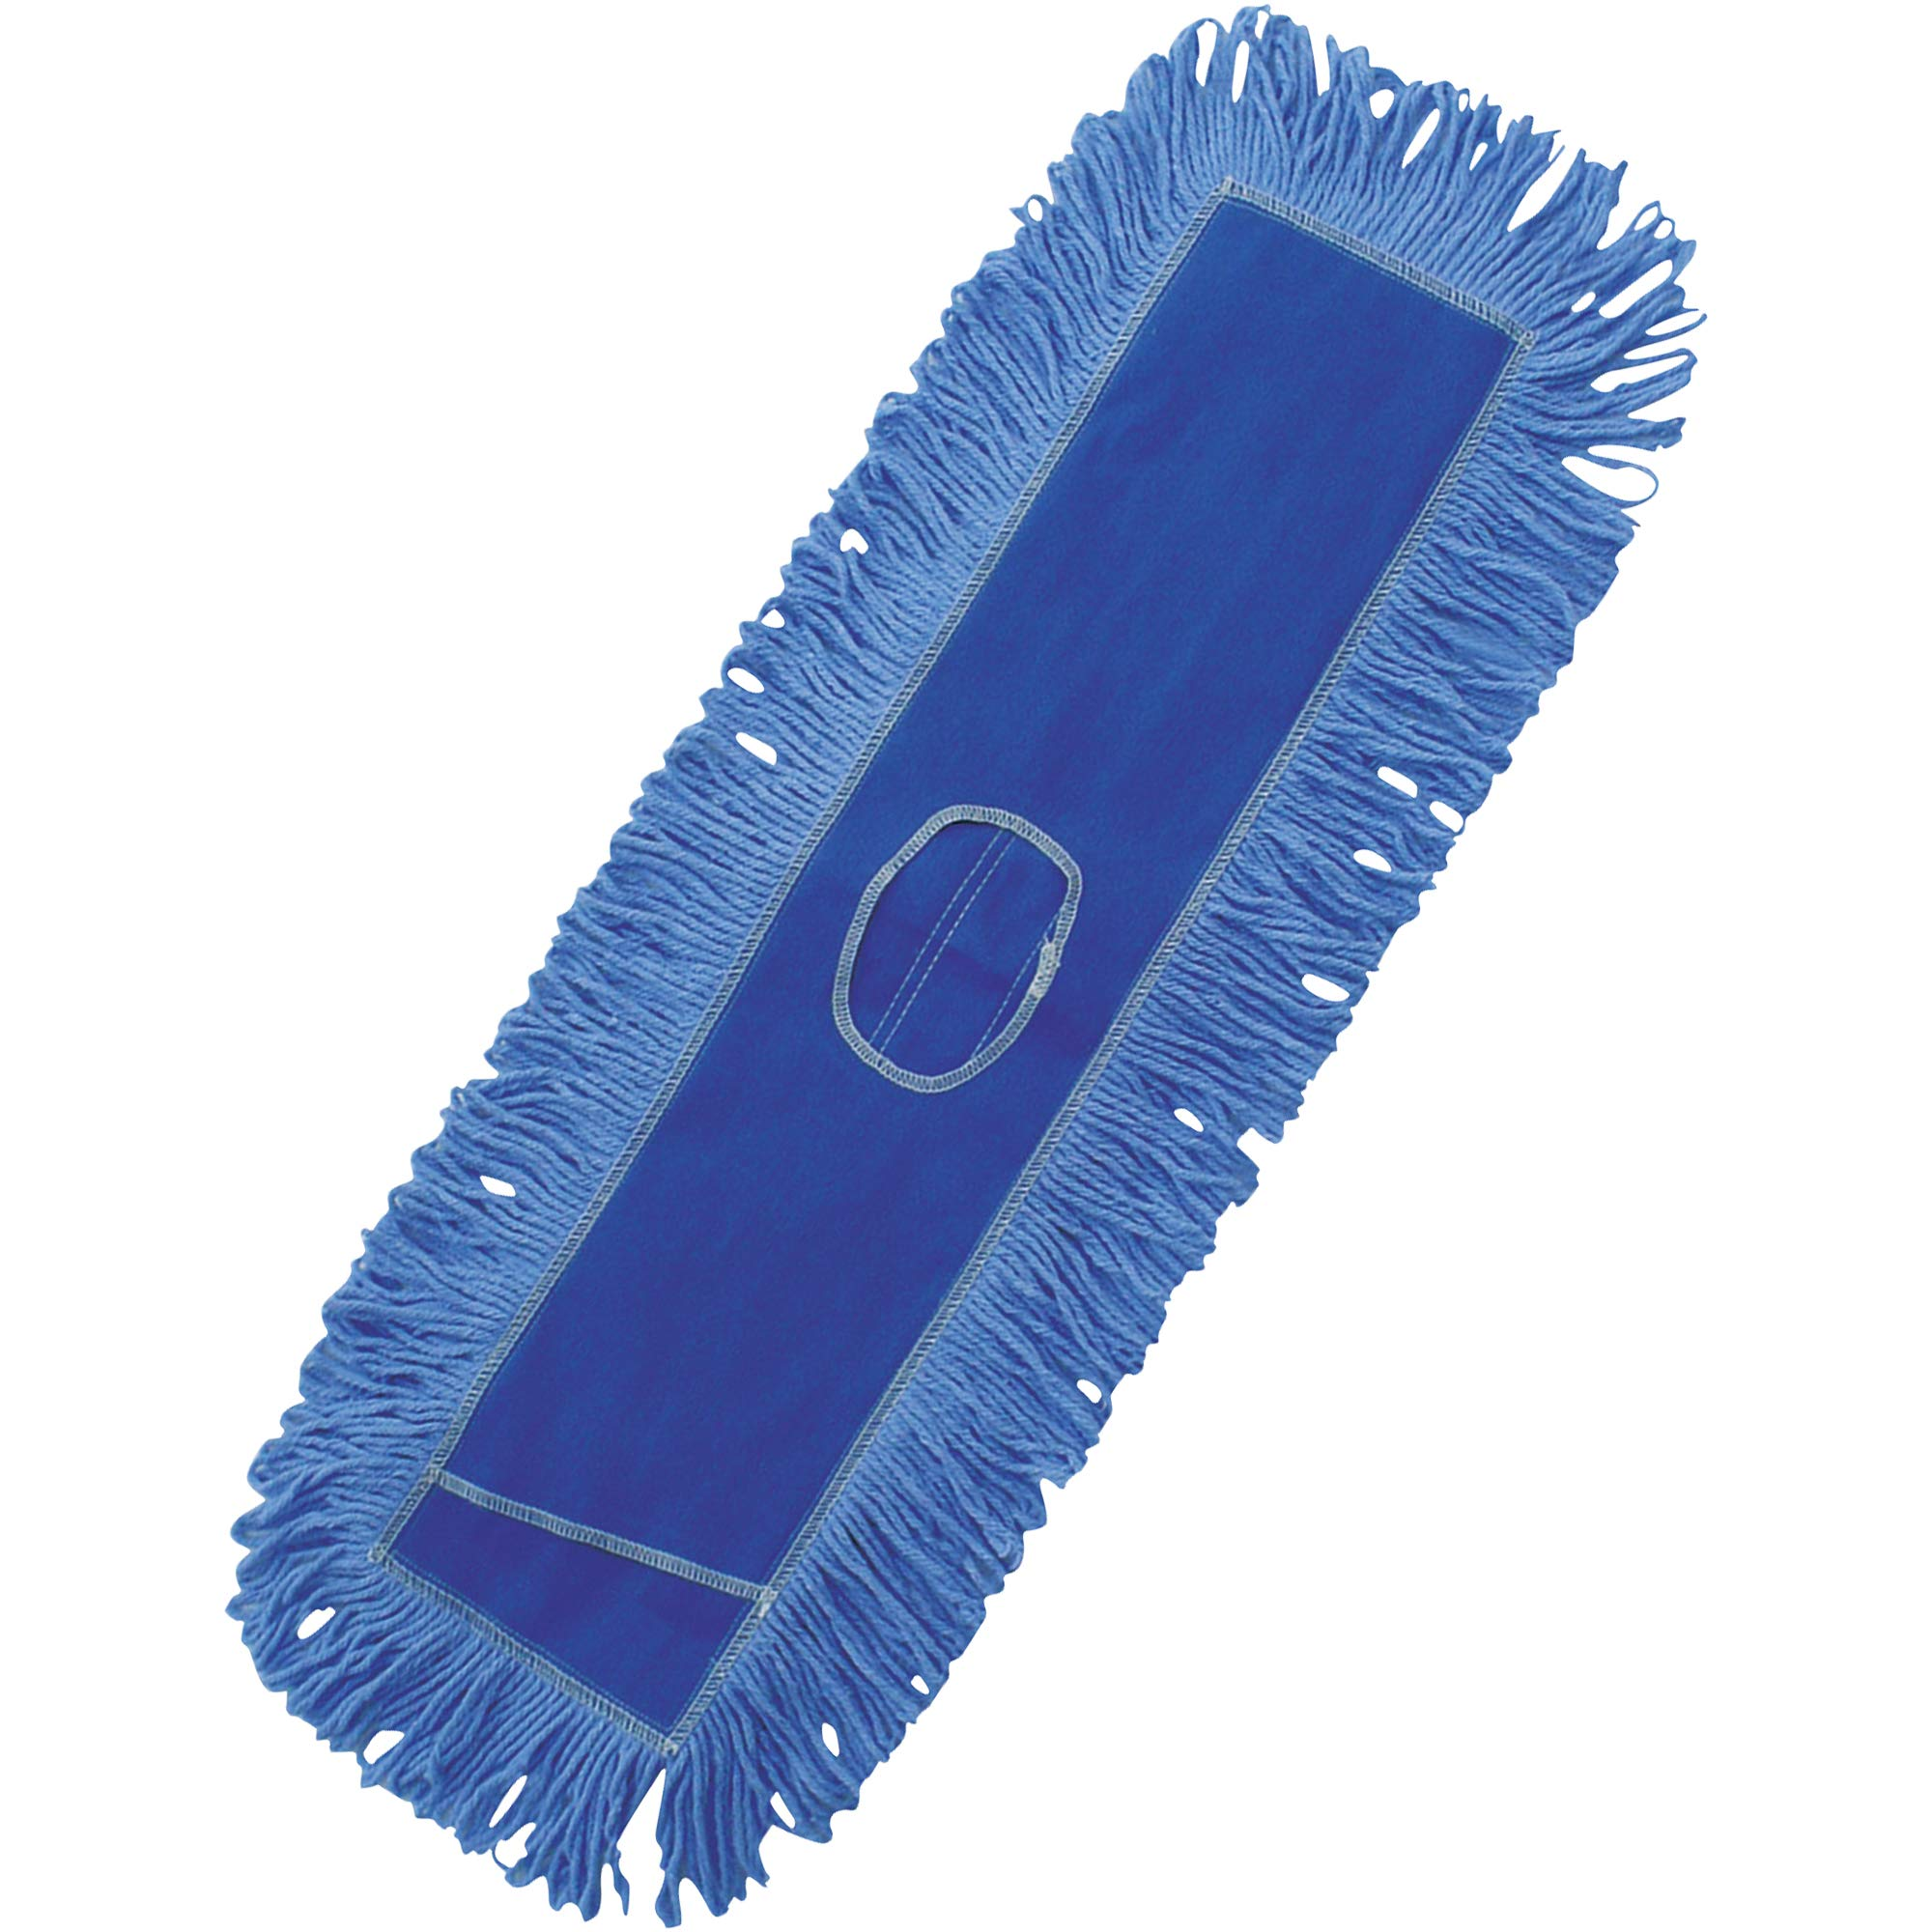 Deluxe Looped-End Dust Mop Head, 24'', Blue, 1/Each